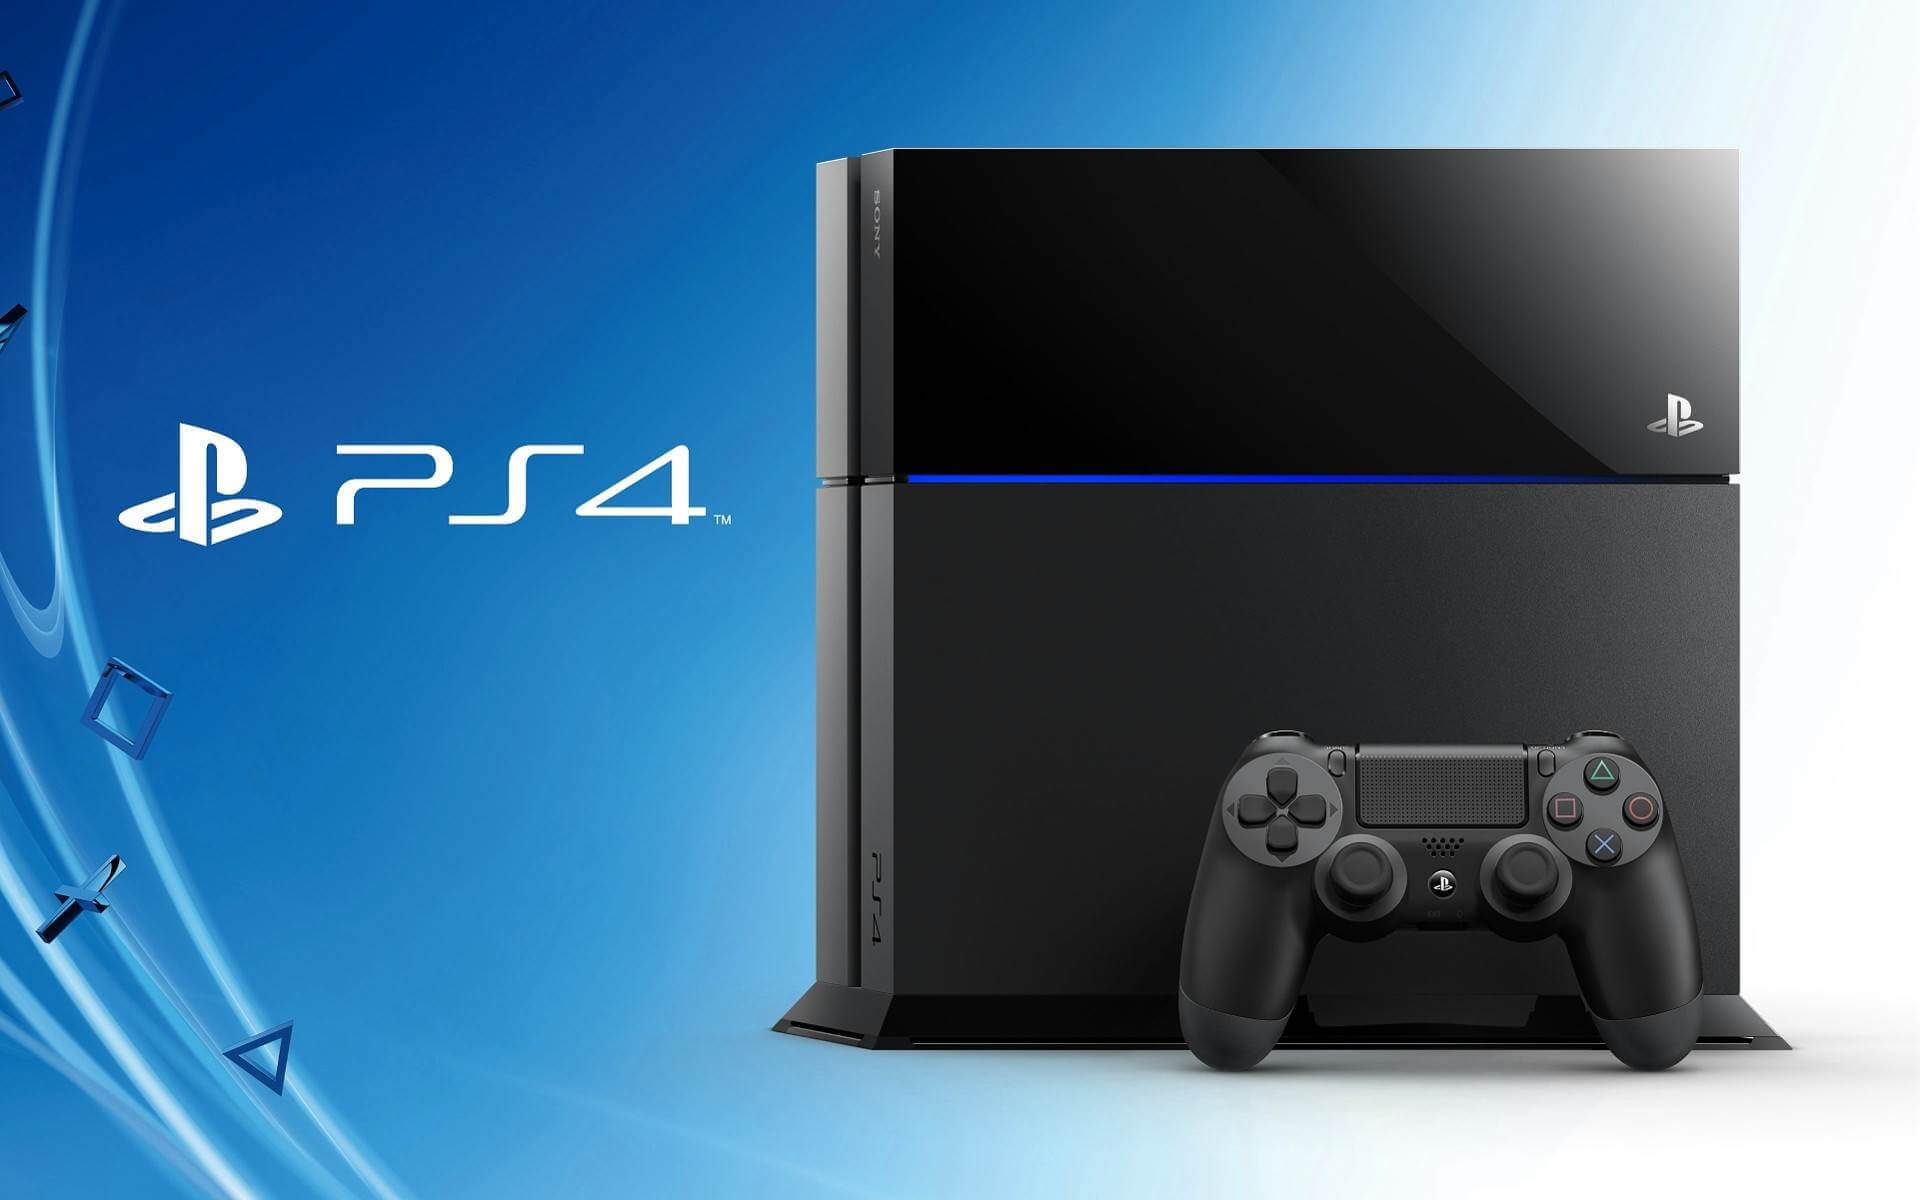 PS4 3.00 Update Adds Exciting Social Media Features